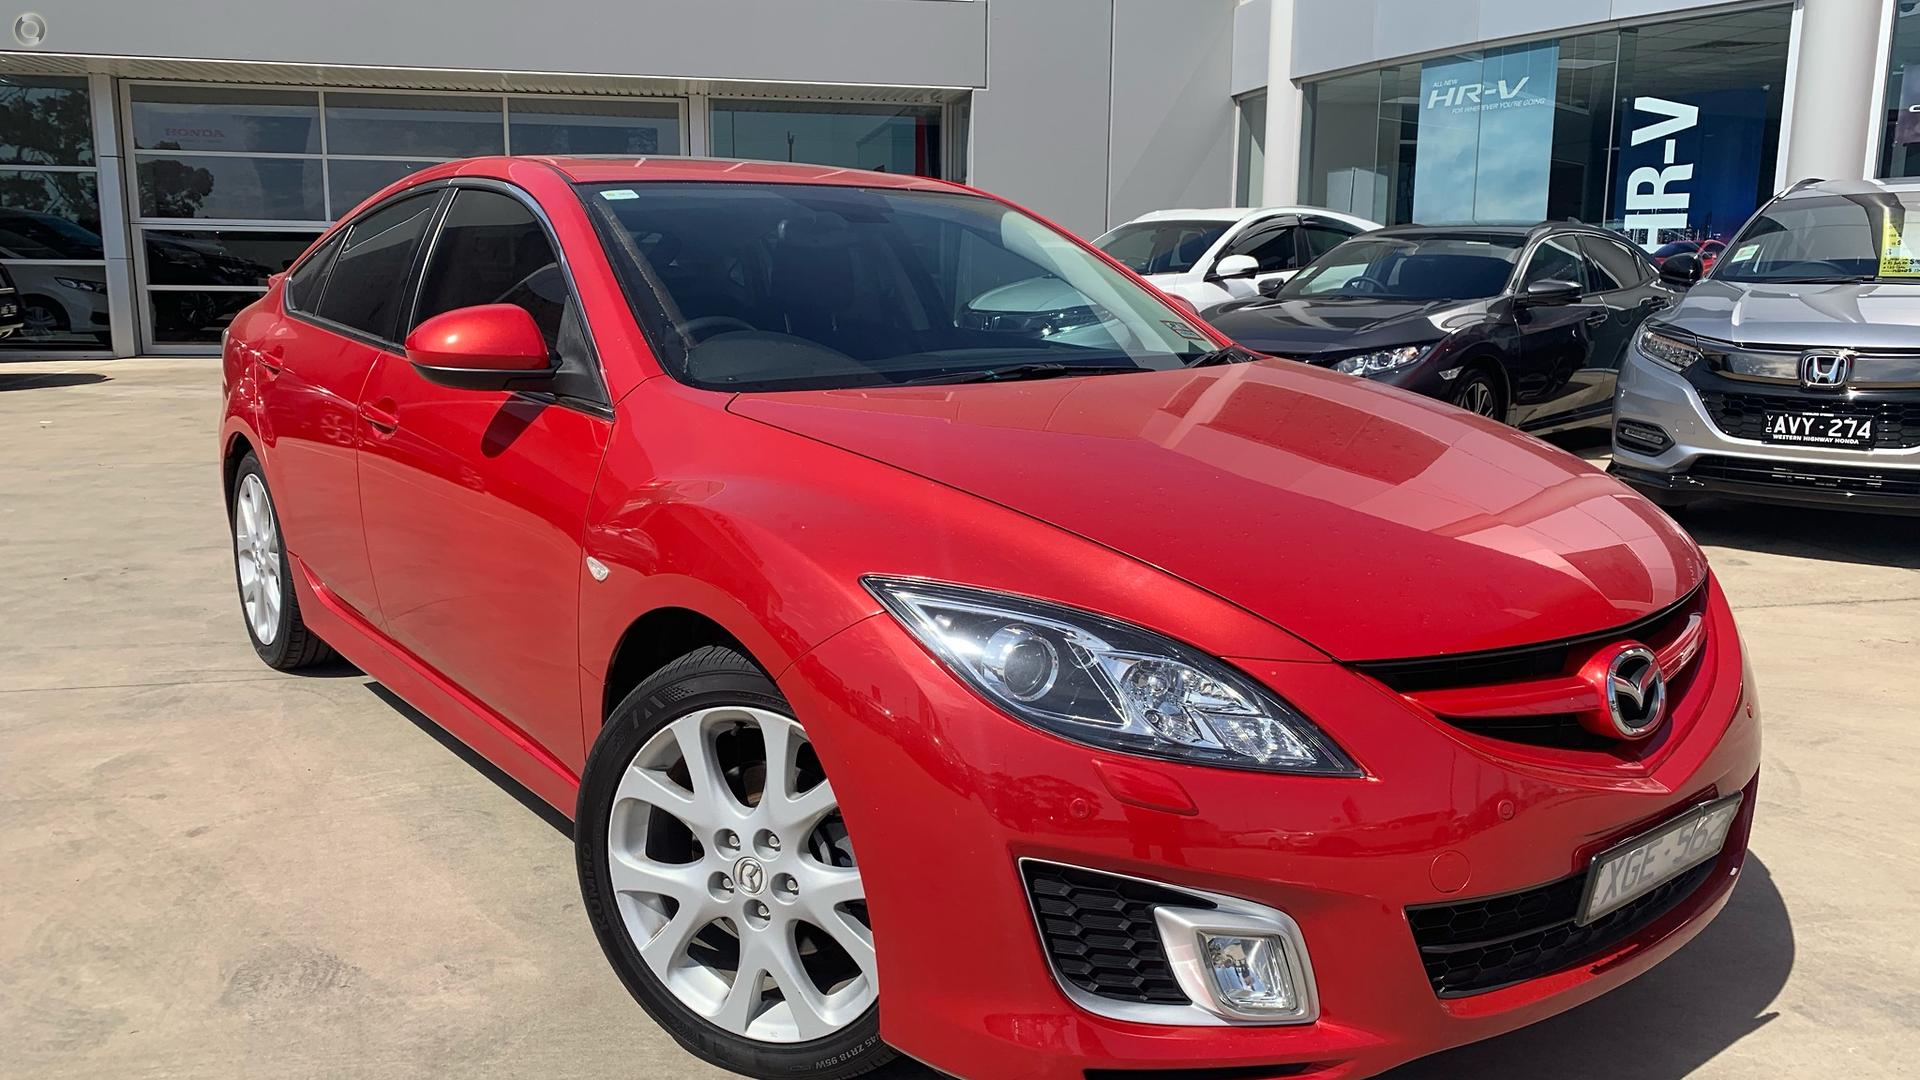 2009 Mazda 6 Luxury GH Series 1